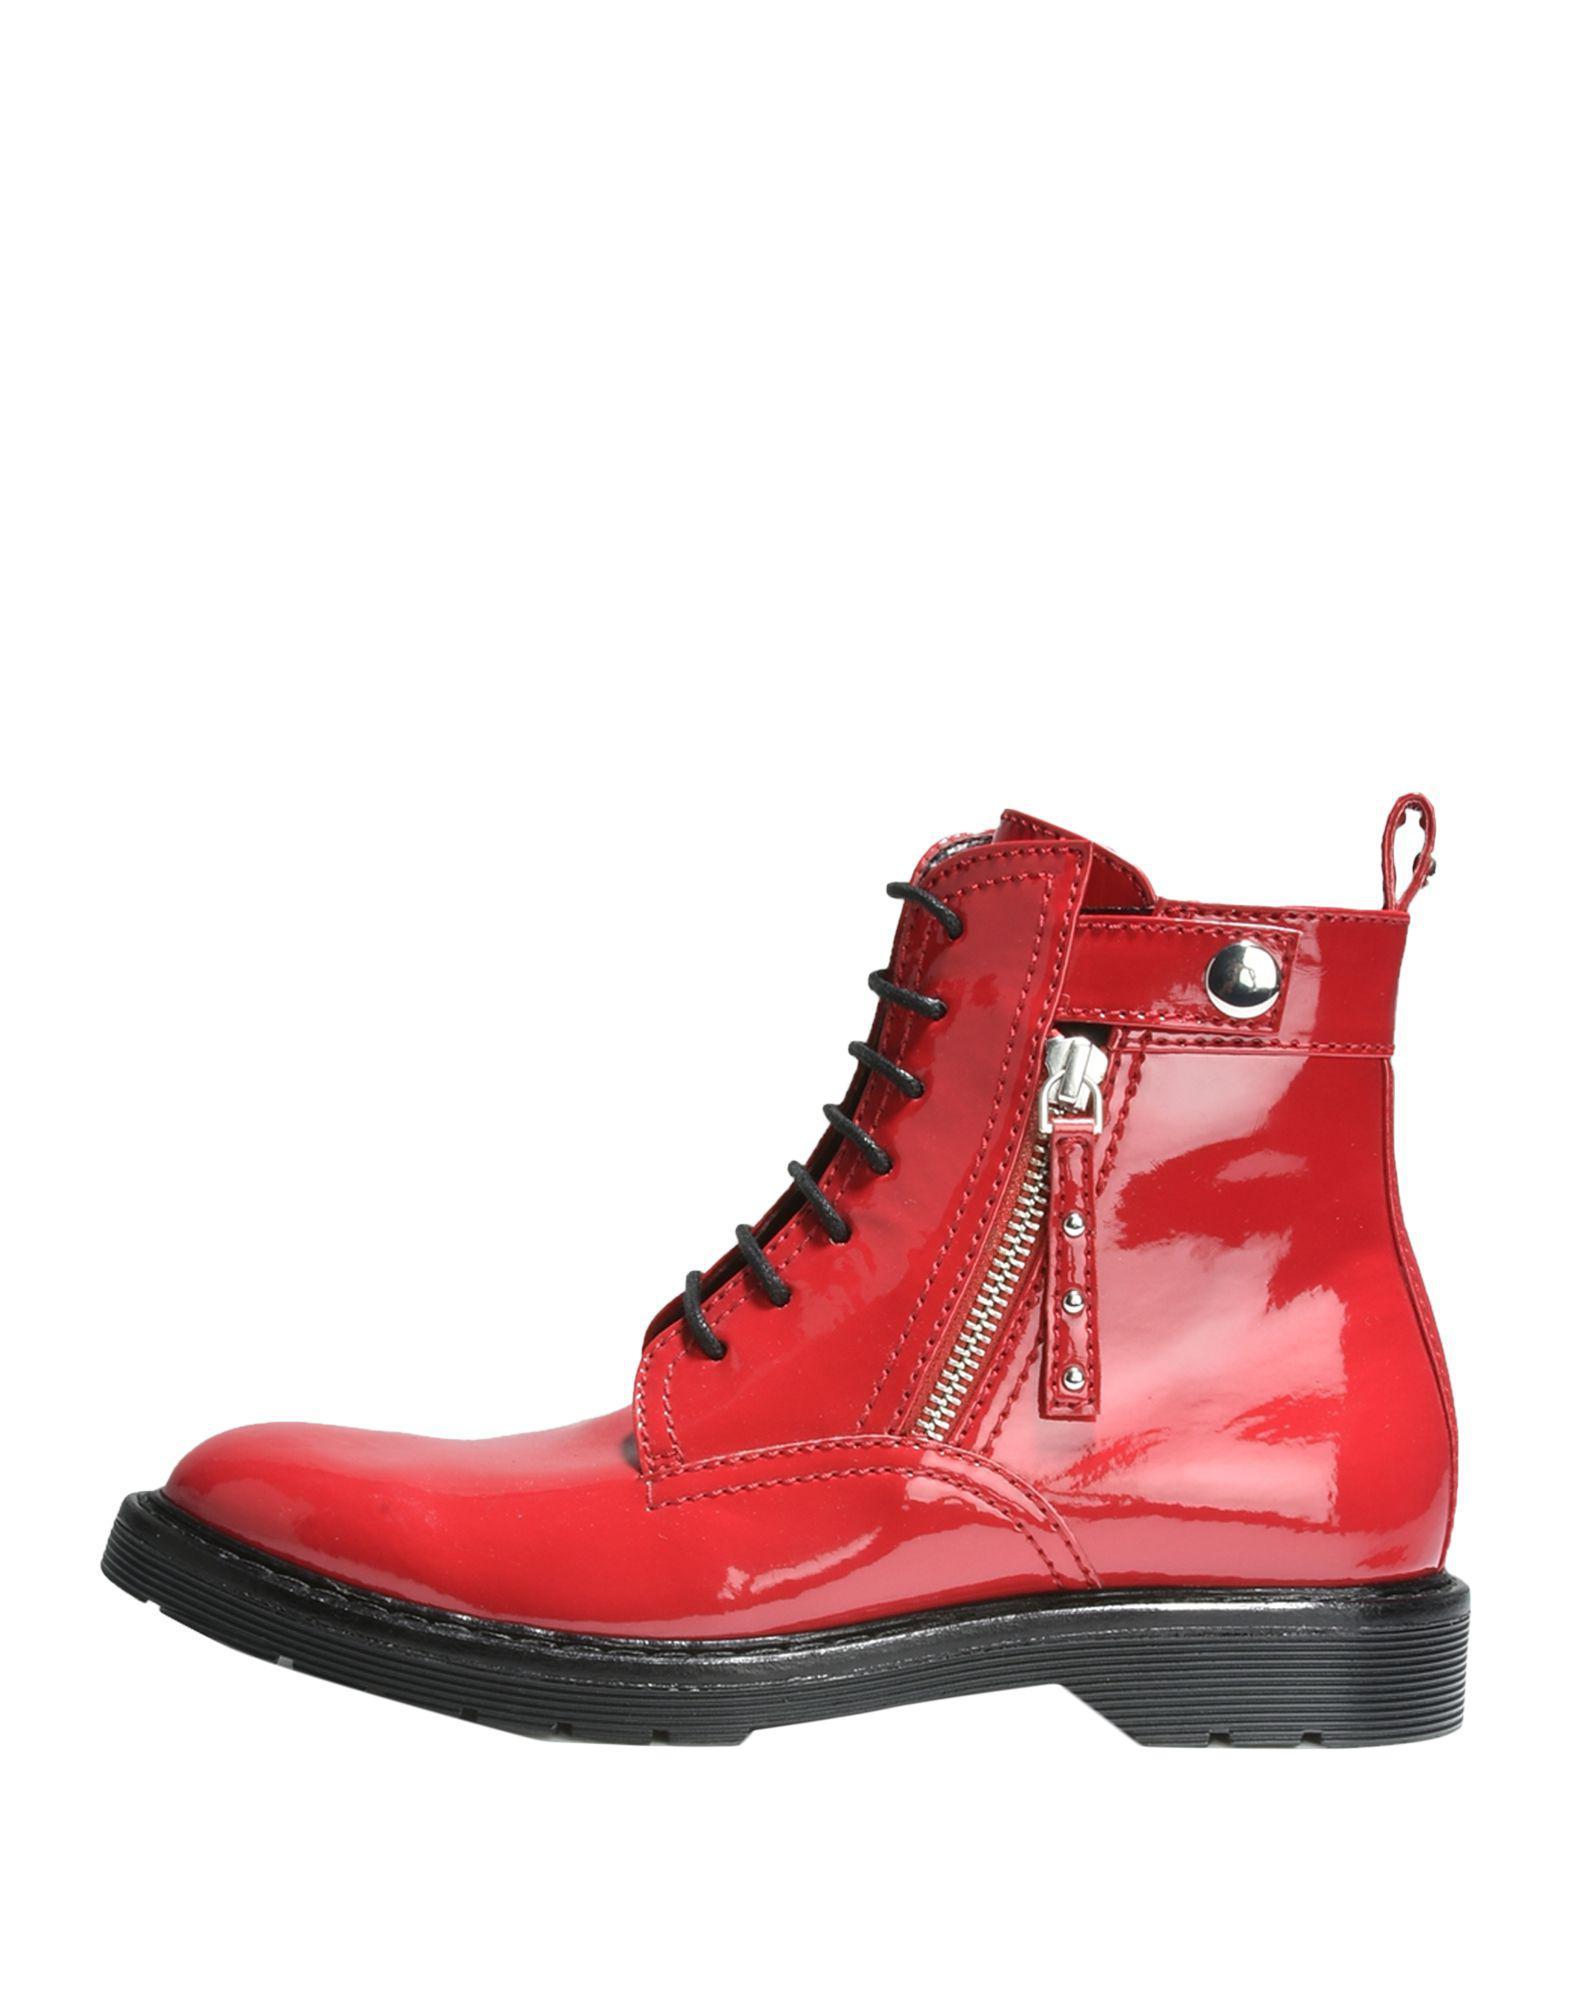 470d7b9cf0 Women's Red Ankle Boots